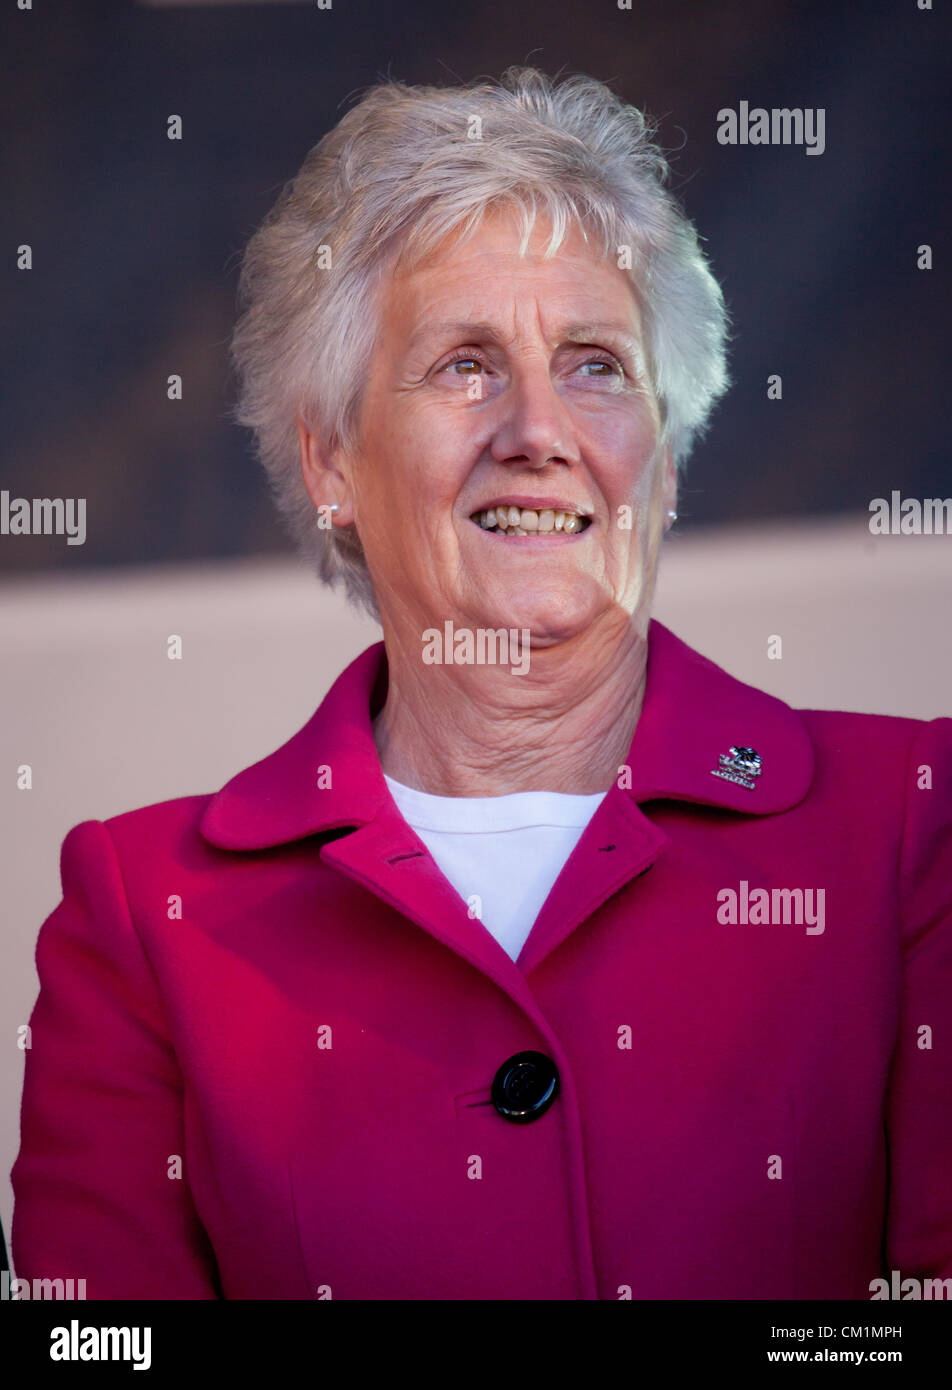 14th September, 2012. Louise Martin, CBE, chair of Sportscotland, awaits the arrival of the athletes at the end - Stock Image